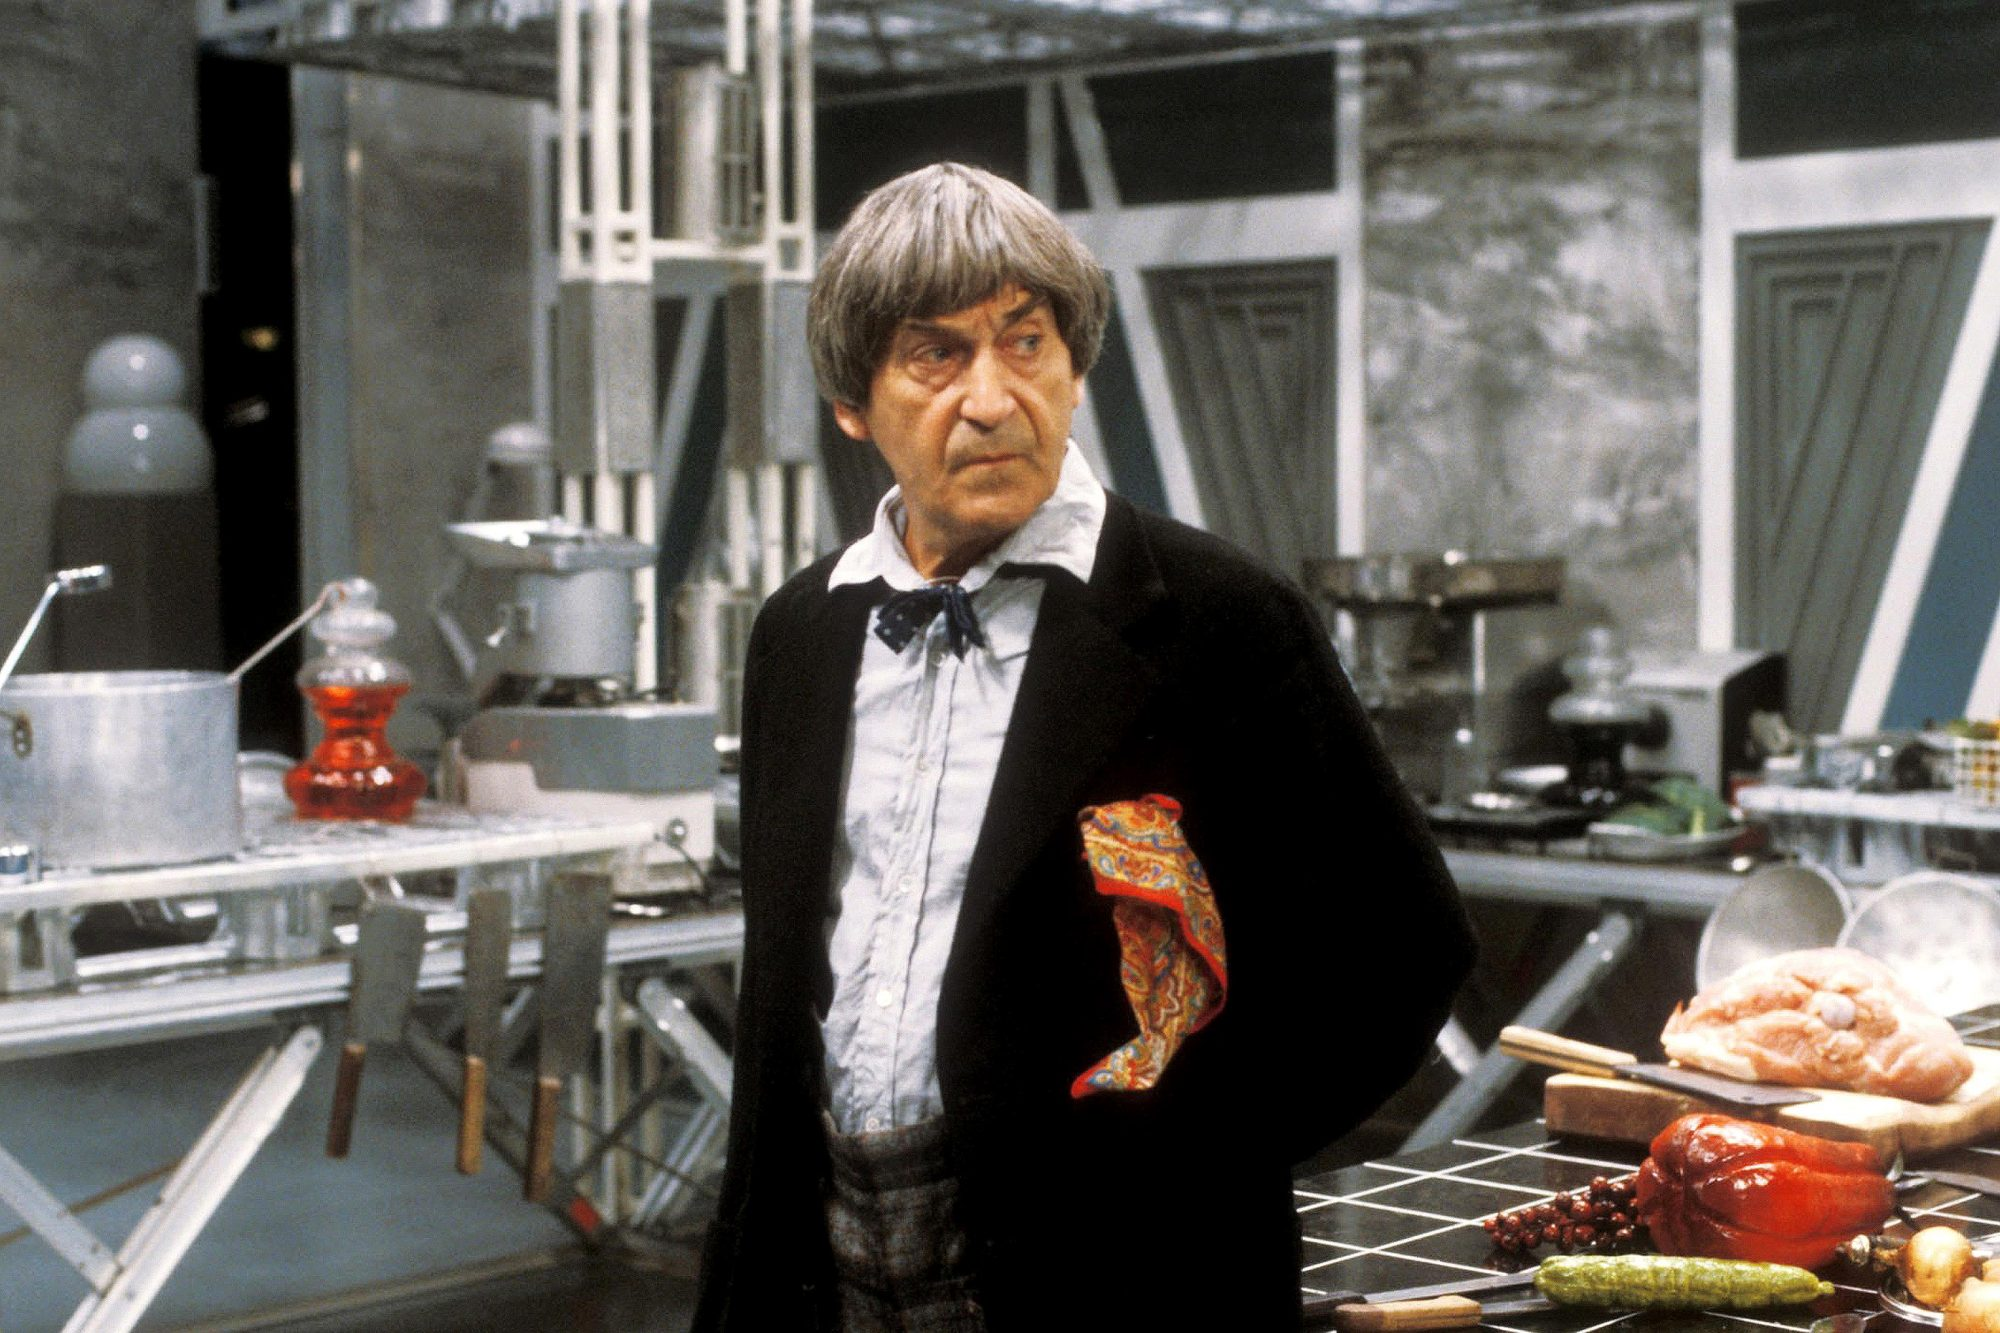 DOCTOR WHO, Patrick Troughton, 'The Two Doctors', (Season 22, aired Feb. 16, 23 & March 2, 1985),